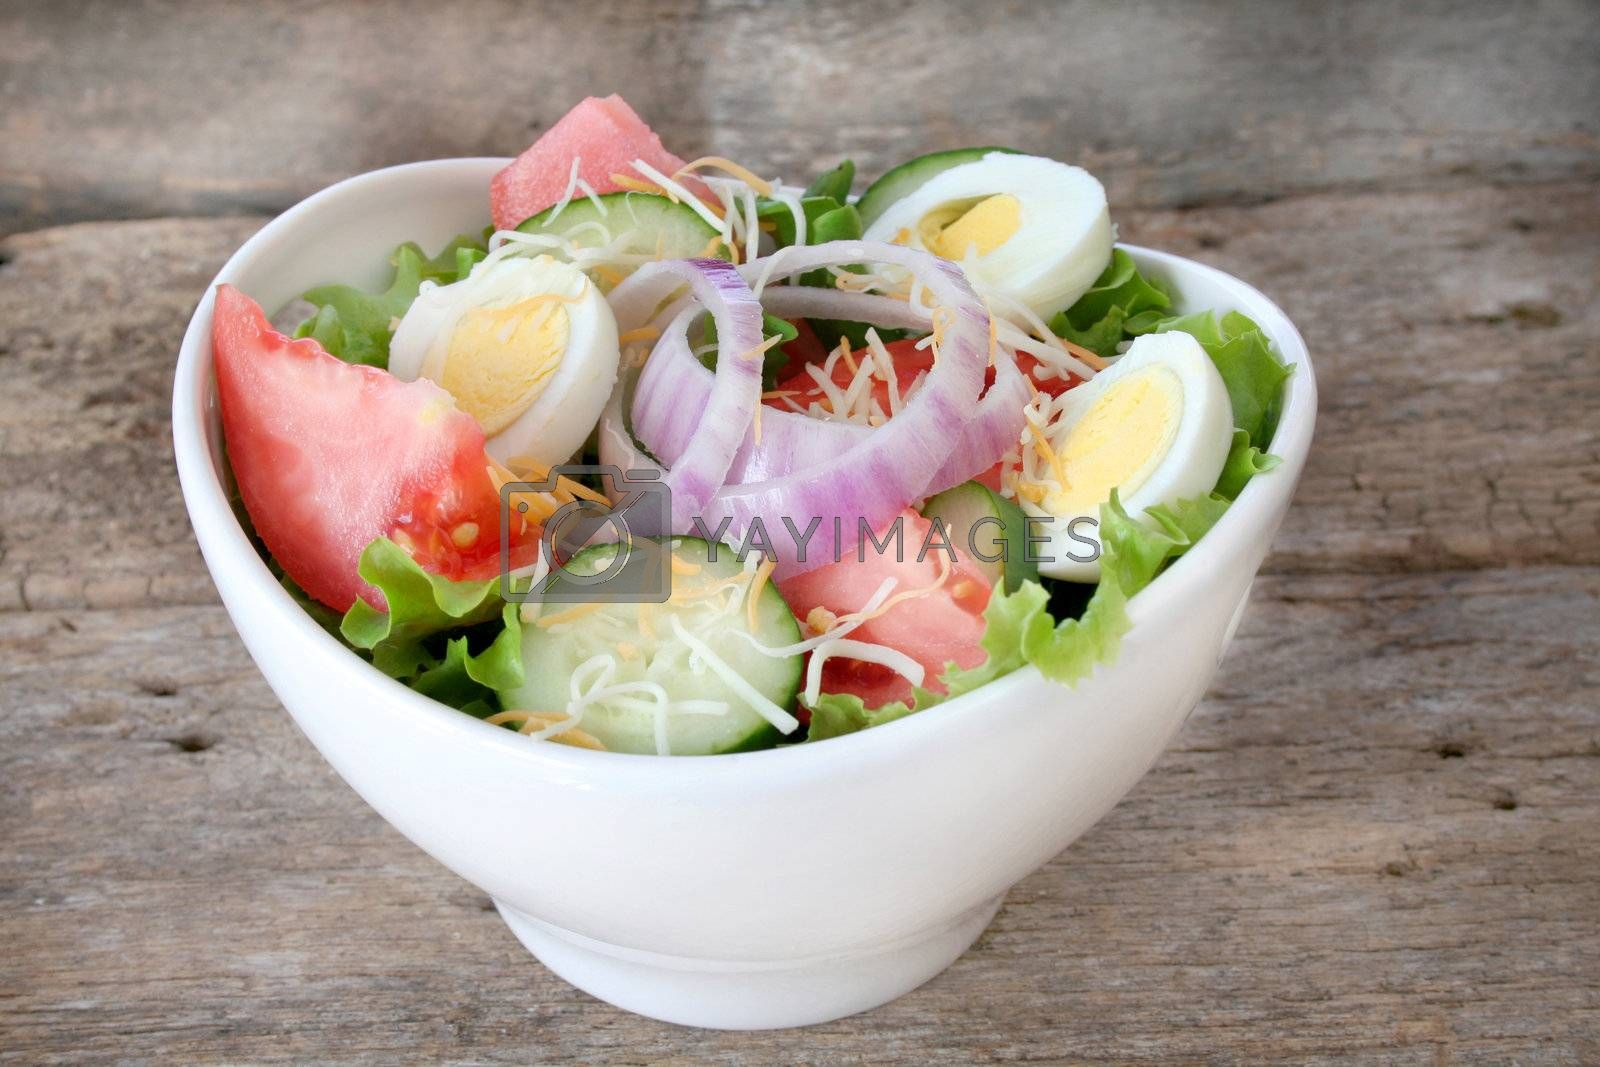 Fresh salad with all the fixings in a white bowl and a rustic looking background.